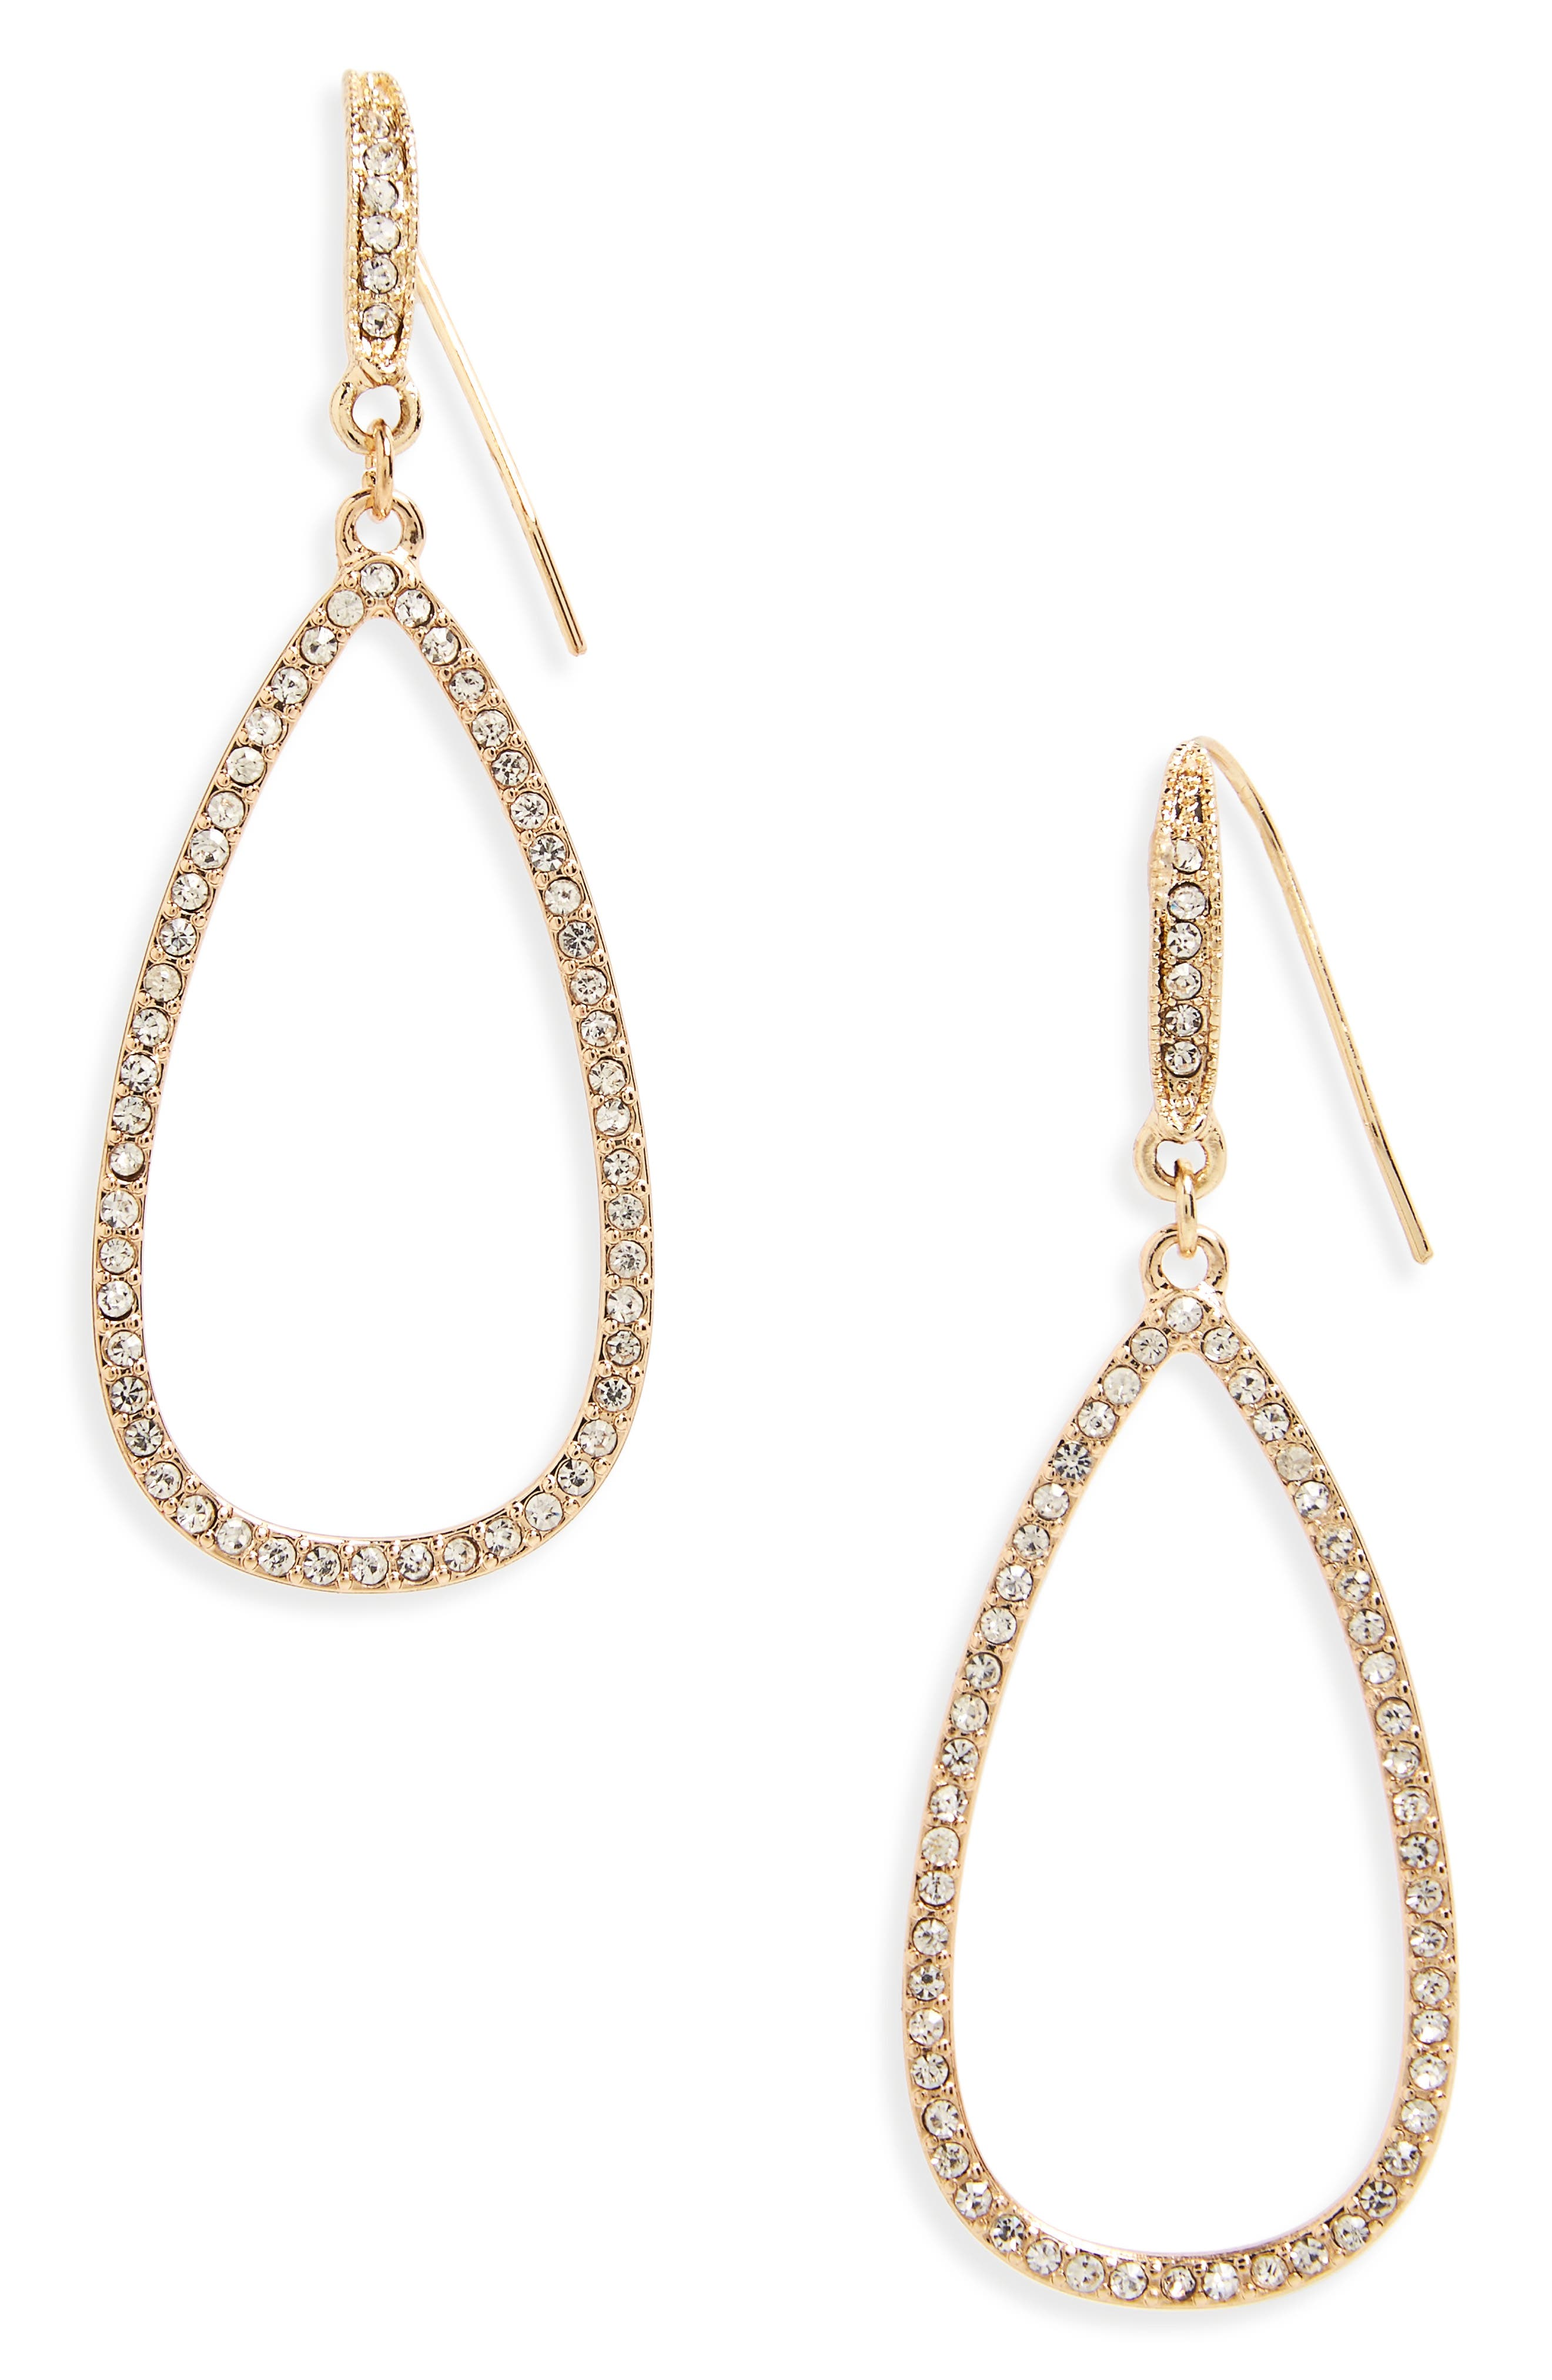 Main Image - Panacea Crystal Teardrop Earrings